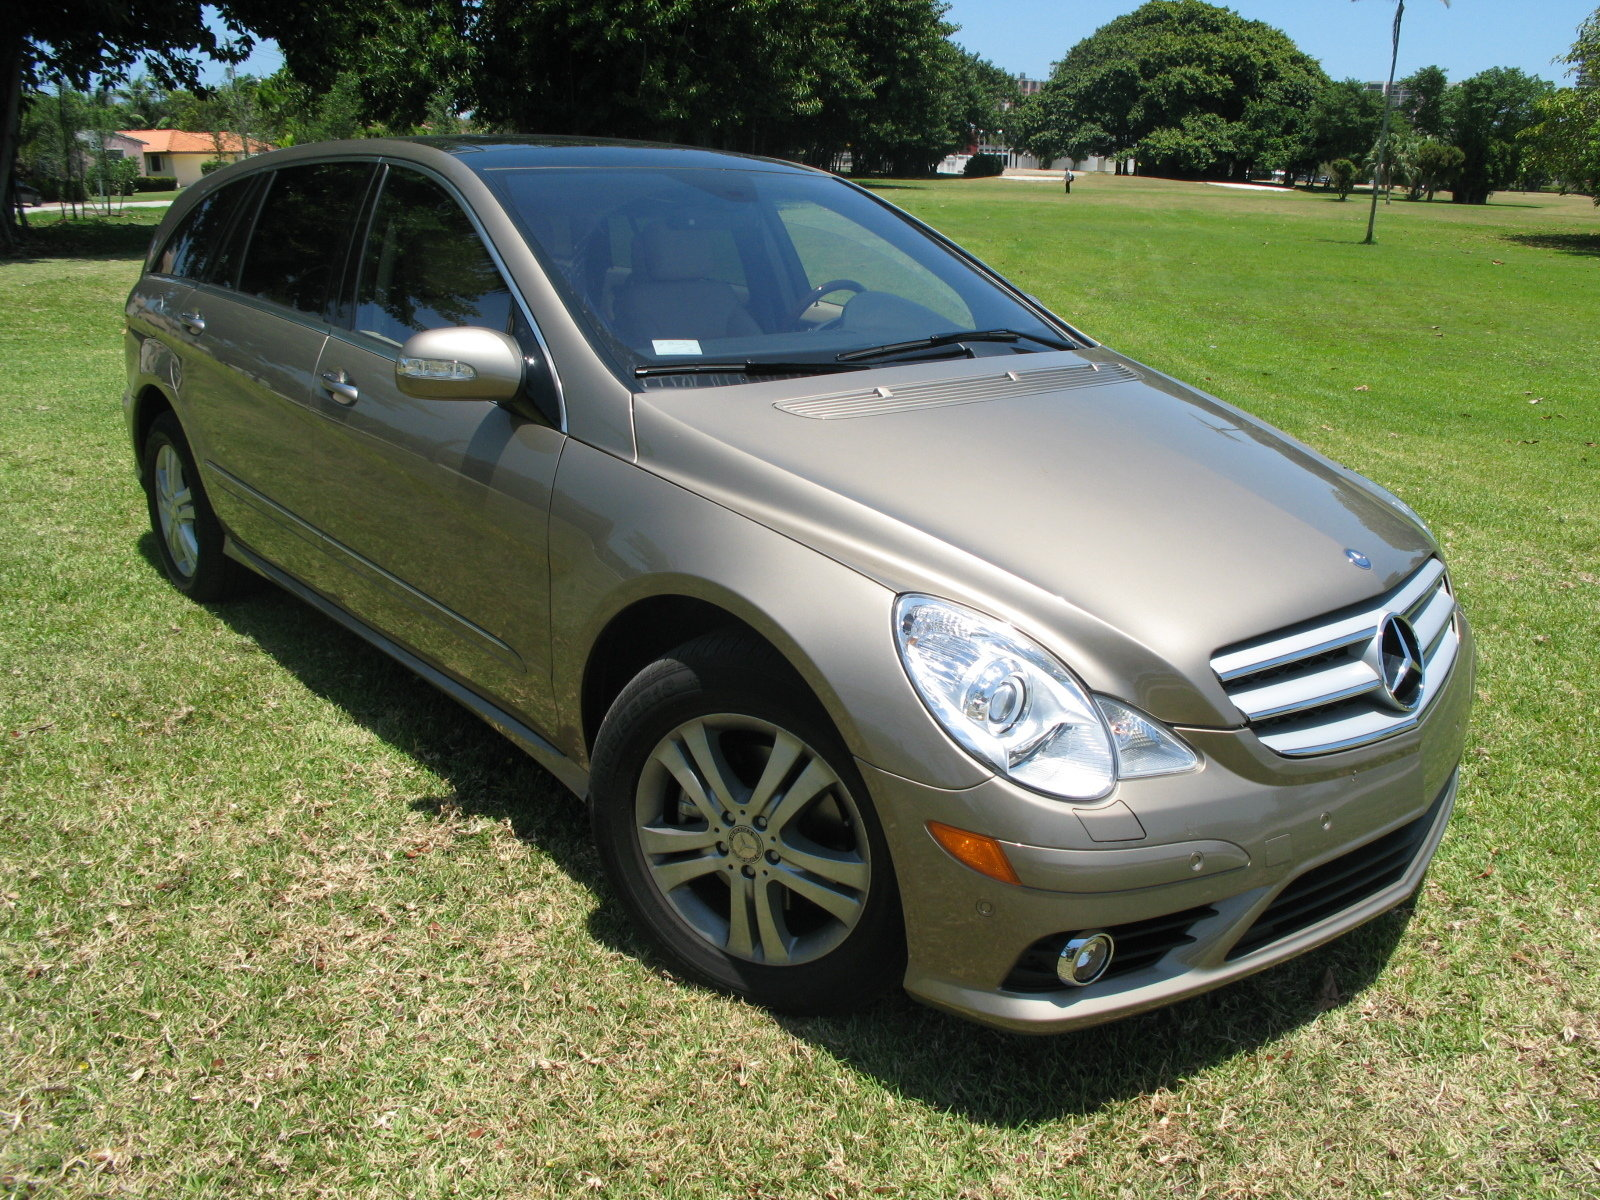 2008 mercedes r320 cdi 4 matic picture 248569 car review top speed. Black Bedroom Furniture Sets. Home Design Ideas